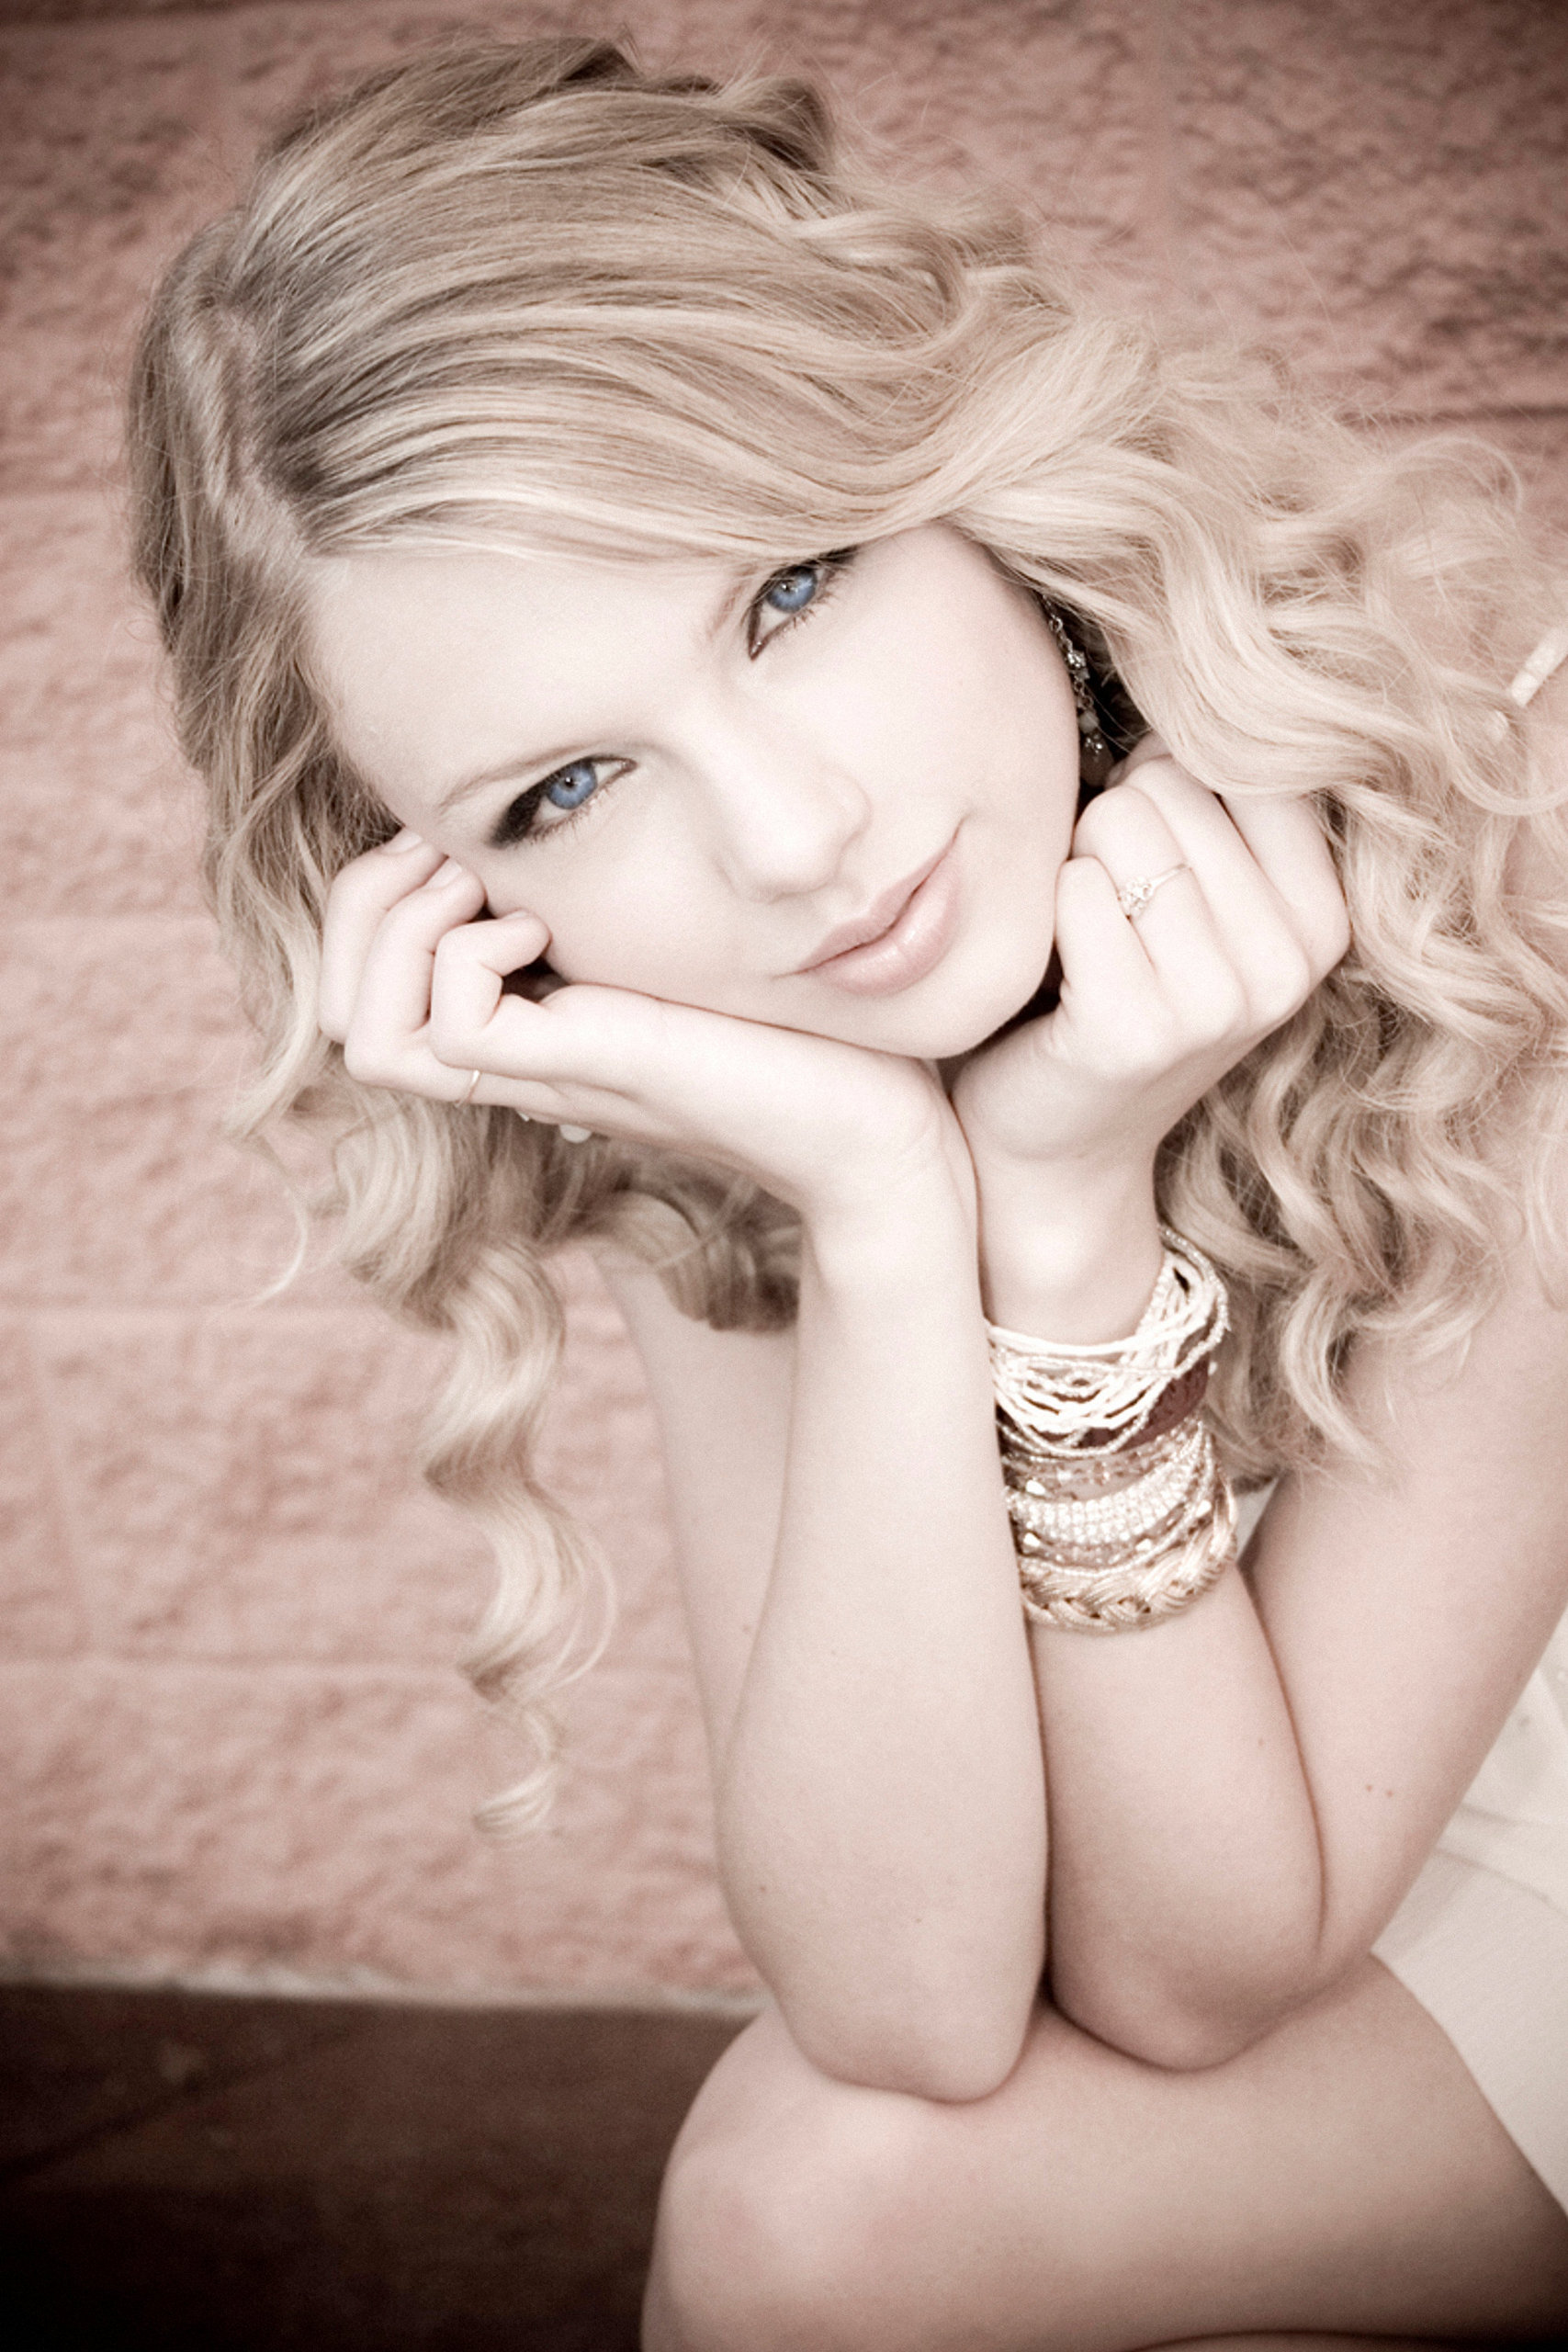 """Fearless"" photoshoot - Fearless (Taylor Swift album ..."